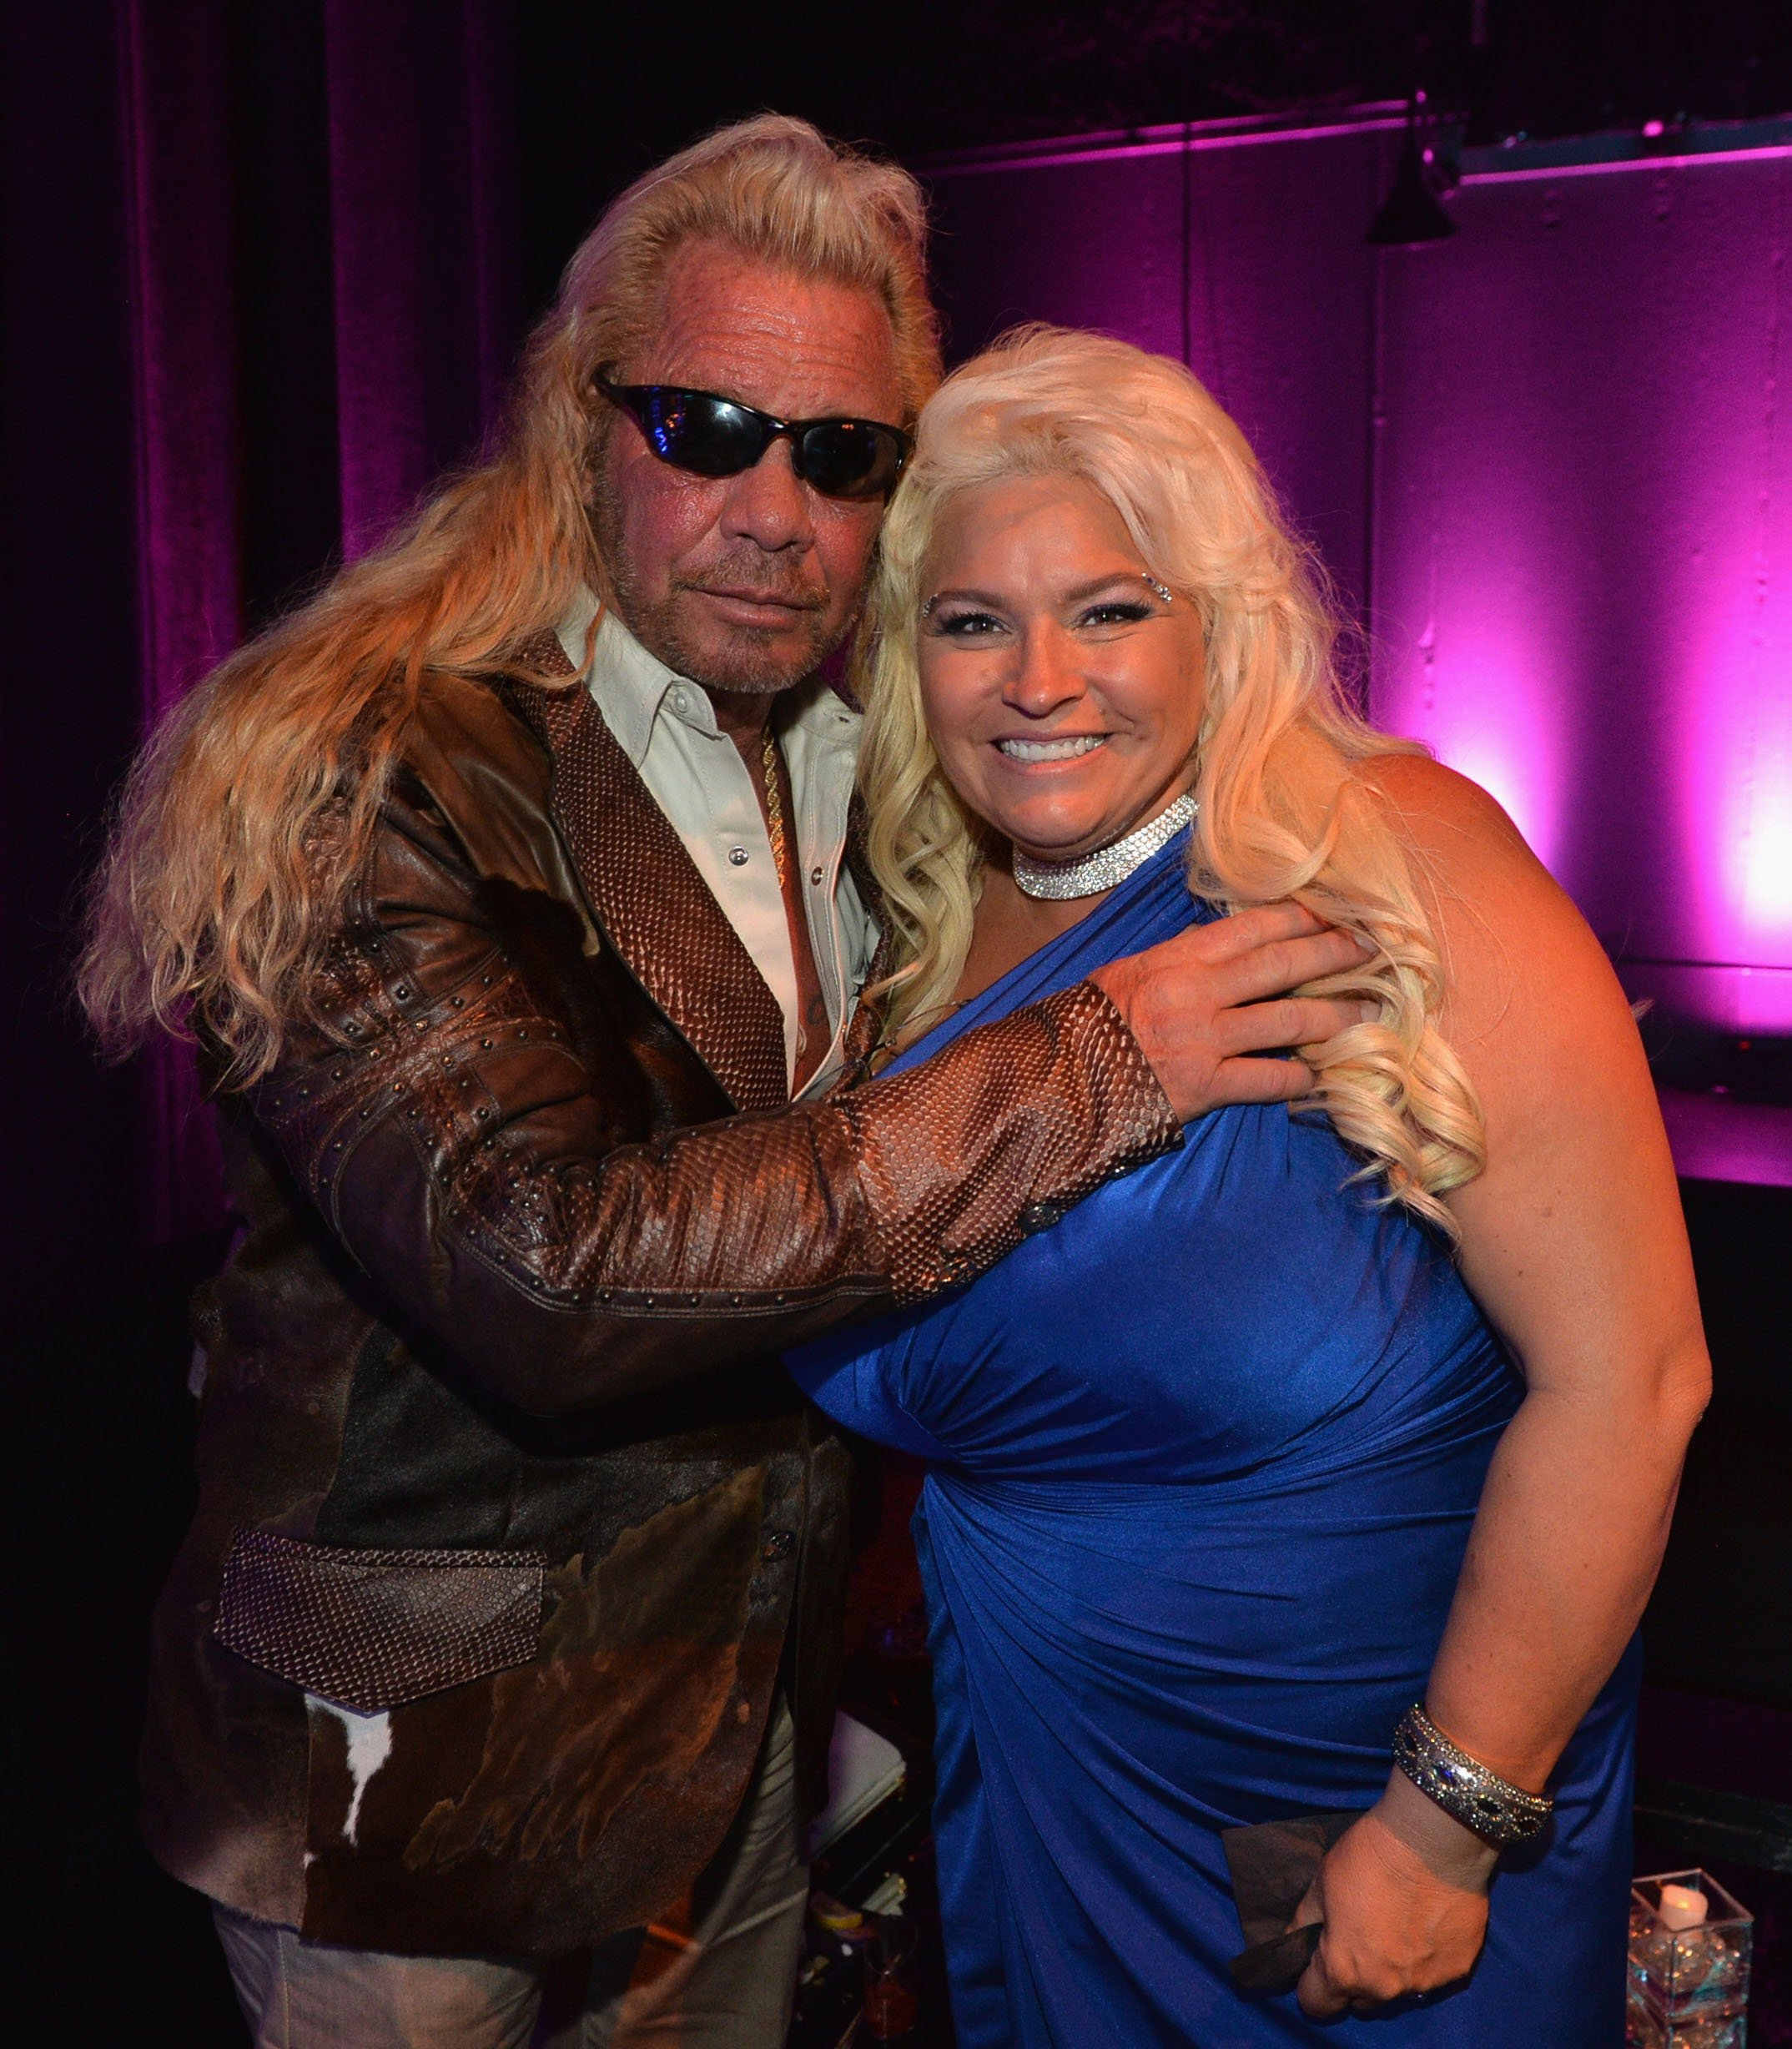 Duane and Beth Chapman at the CMT Music Awards - After Party at Rocketown on June 5, 2013 in Nashville, Tennessee | Photo: Getty Images